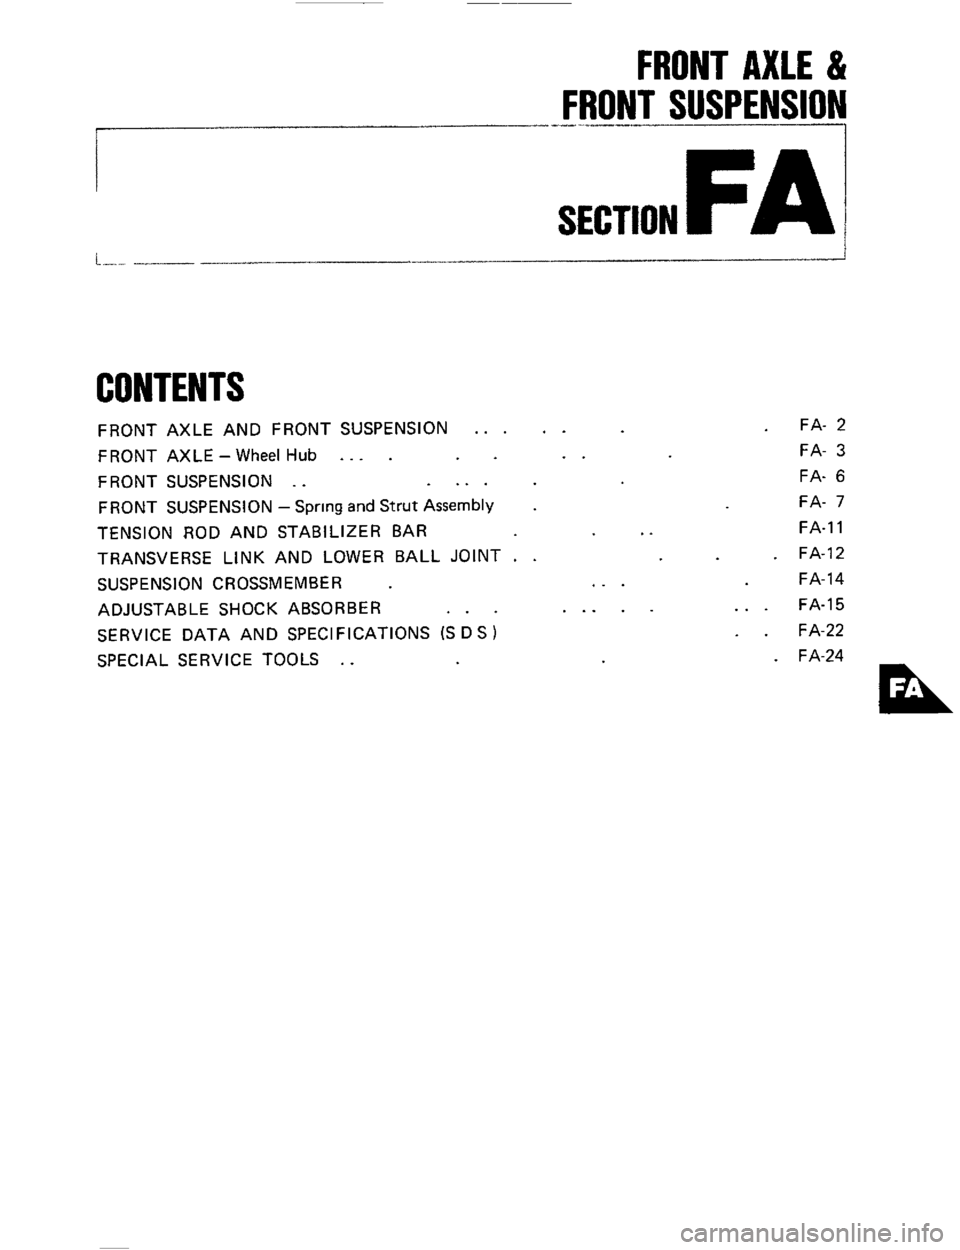 NISSAN 300ZX 1984 Z31 Front Suspension Workshop Manual, Page 1